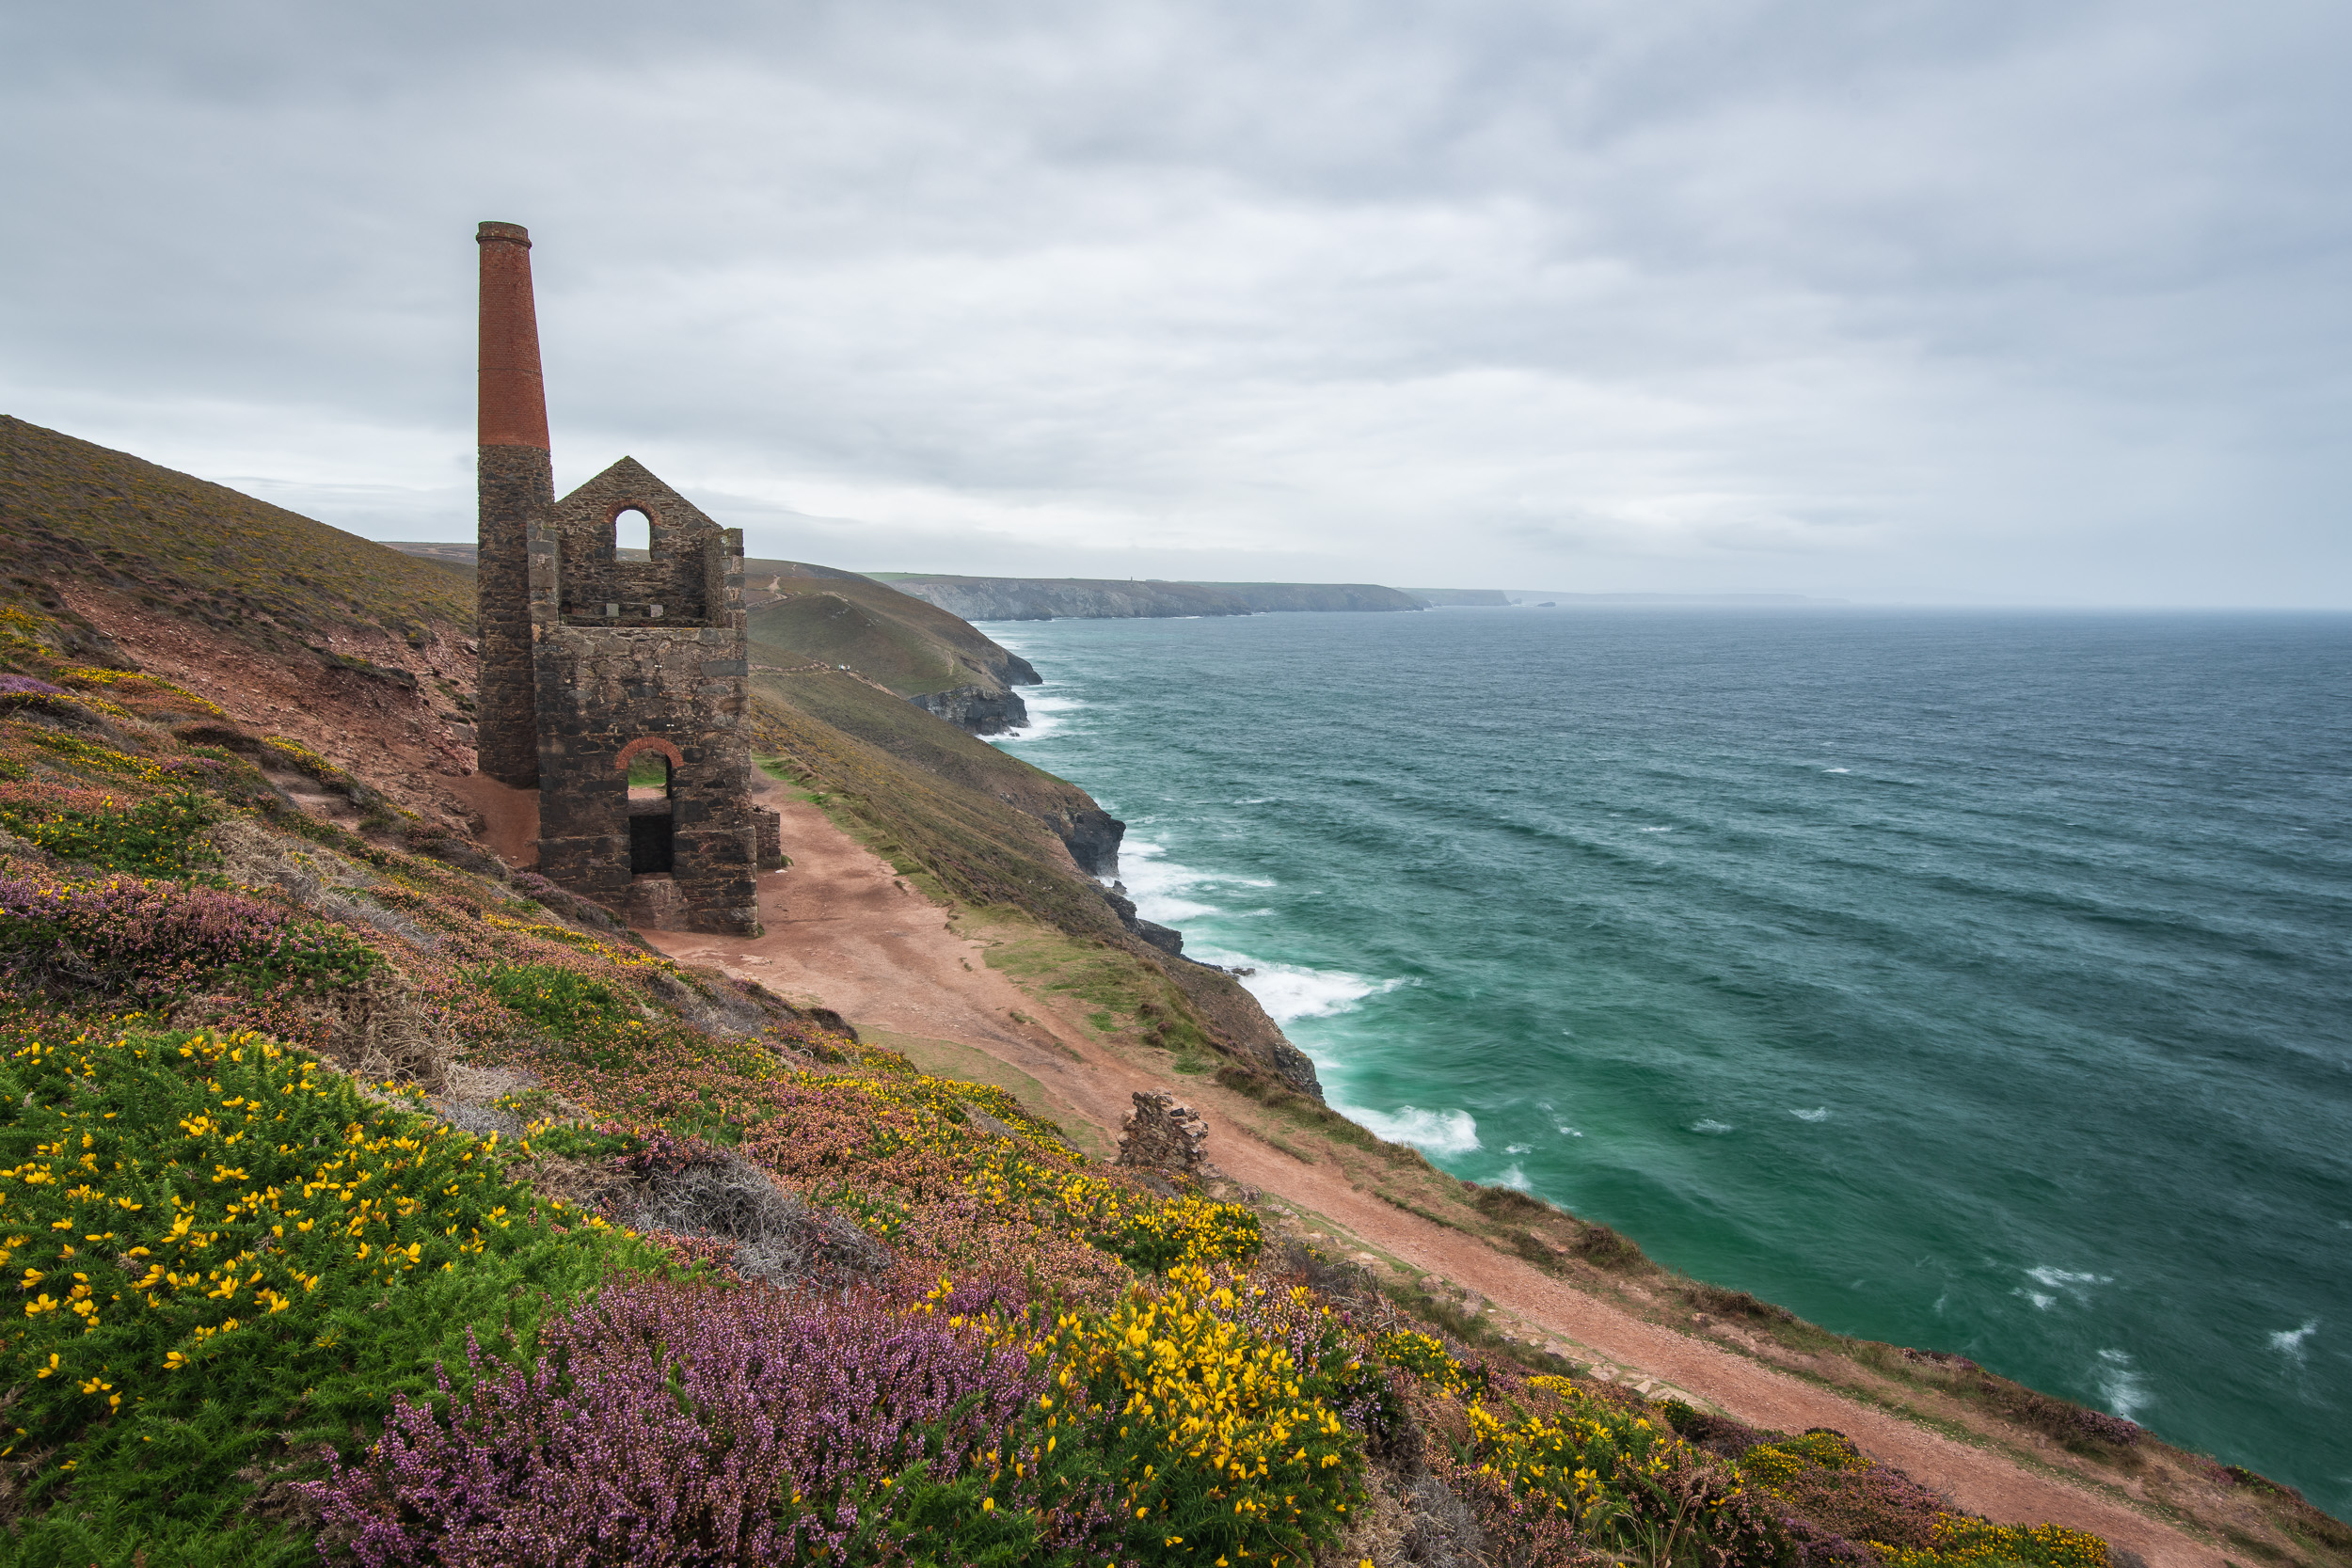 A Splash of Colour on a Grey Day at Wheal Coates #1, Cornwall